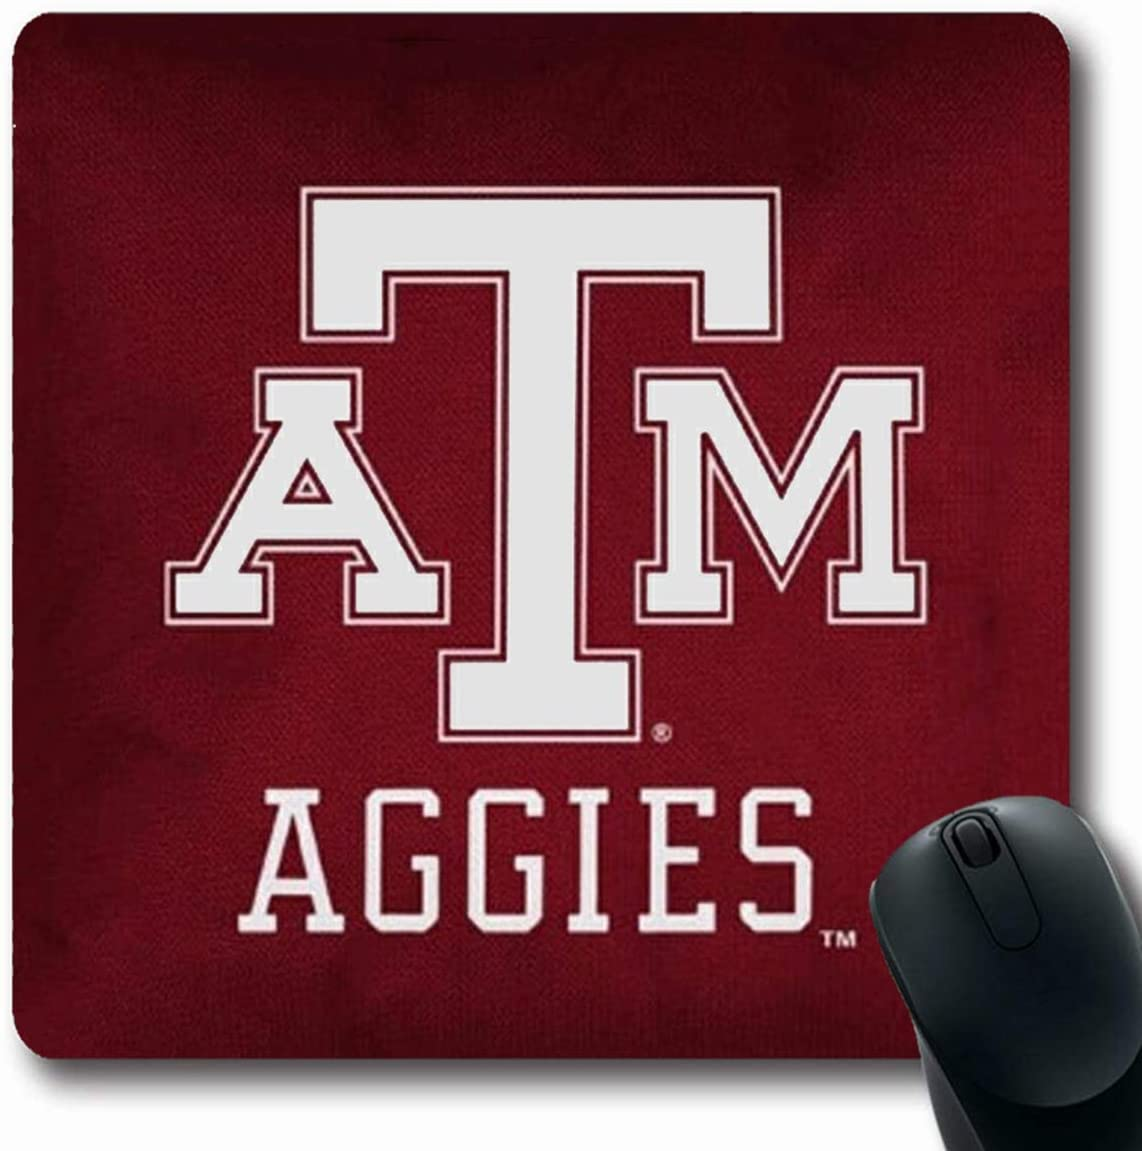 Ahawoso Mousepads Squarer Red Texas A and M Printed Oblong Shape 7.9 x 9.5 Inches Oblong Gaming Mouse Pad Non-Slip Rubber Mat